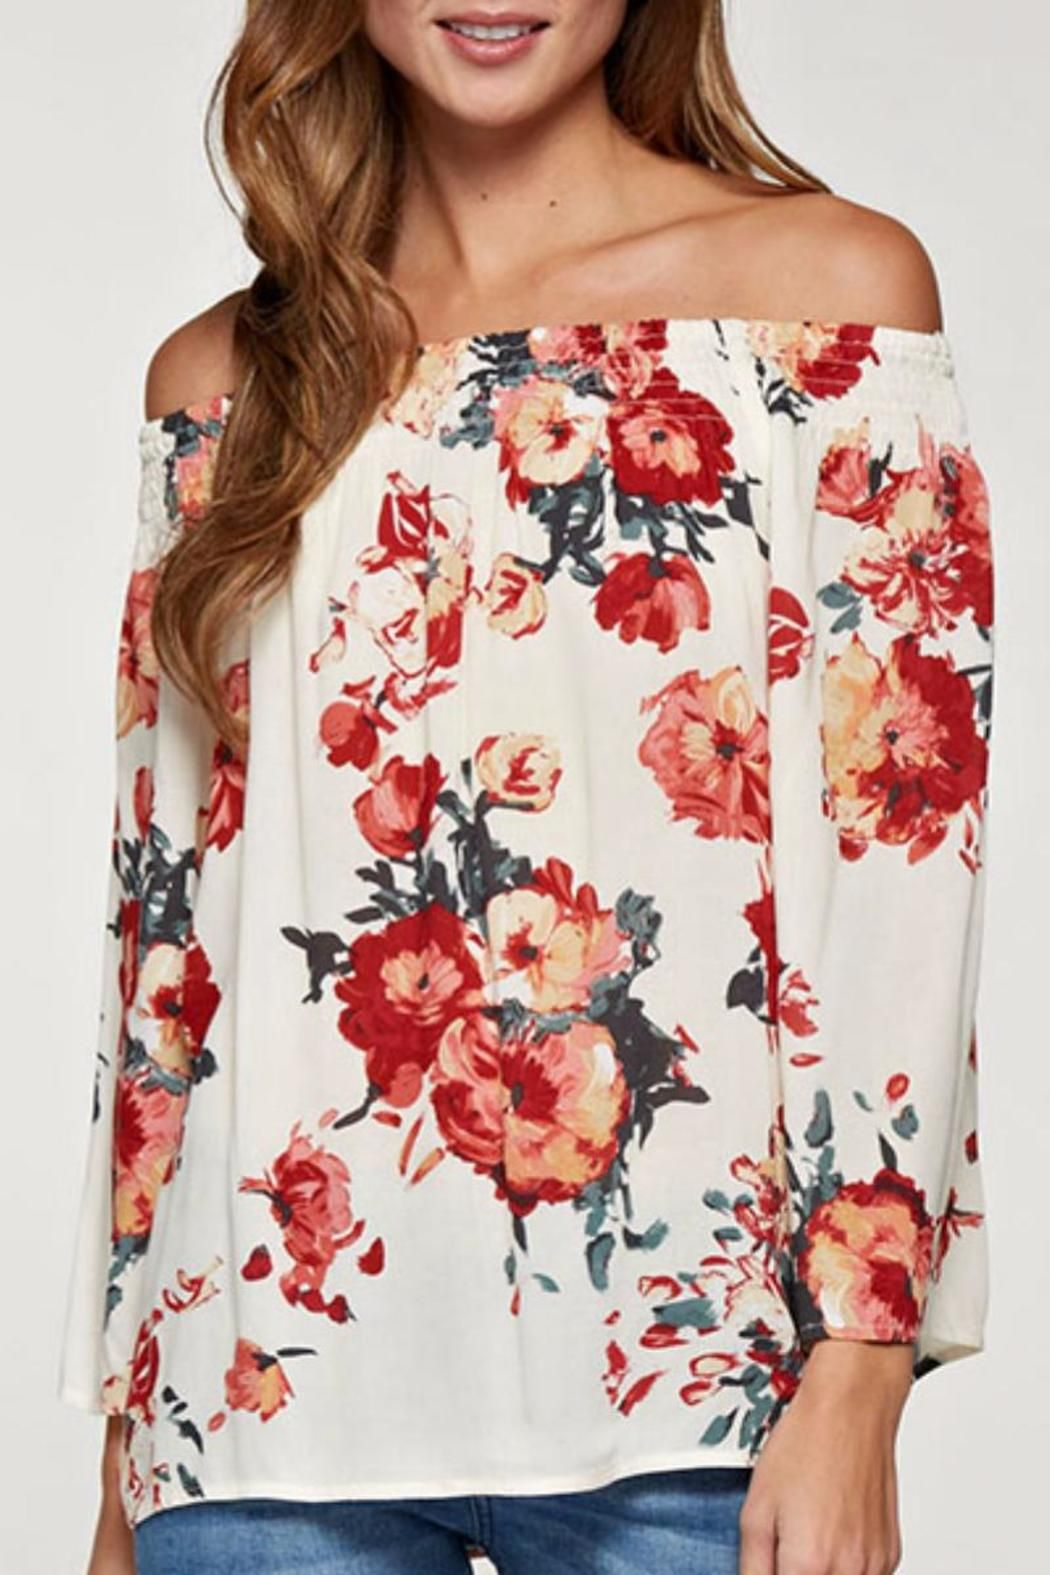 9a9f1b3c4b3760 Embrace your femininity with this shoulder-baring top by Lovestitch. Cut  from a beautiful floral print this top features an off the shoulder design  with a ...